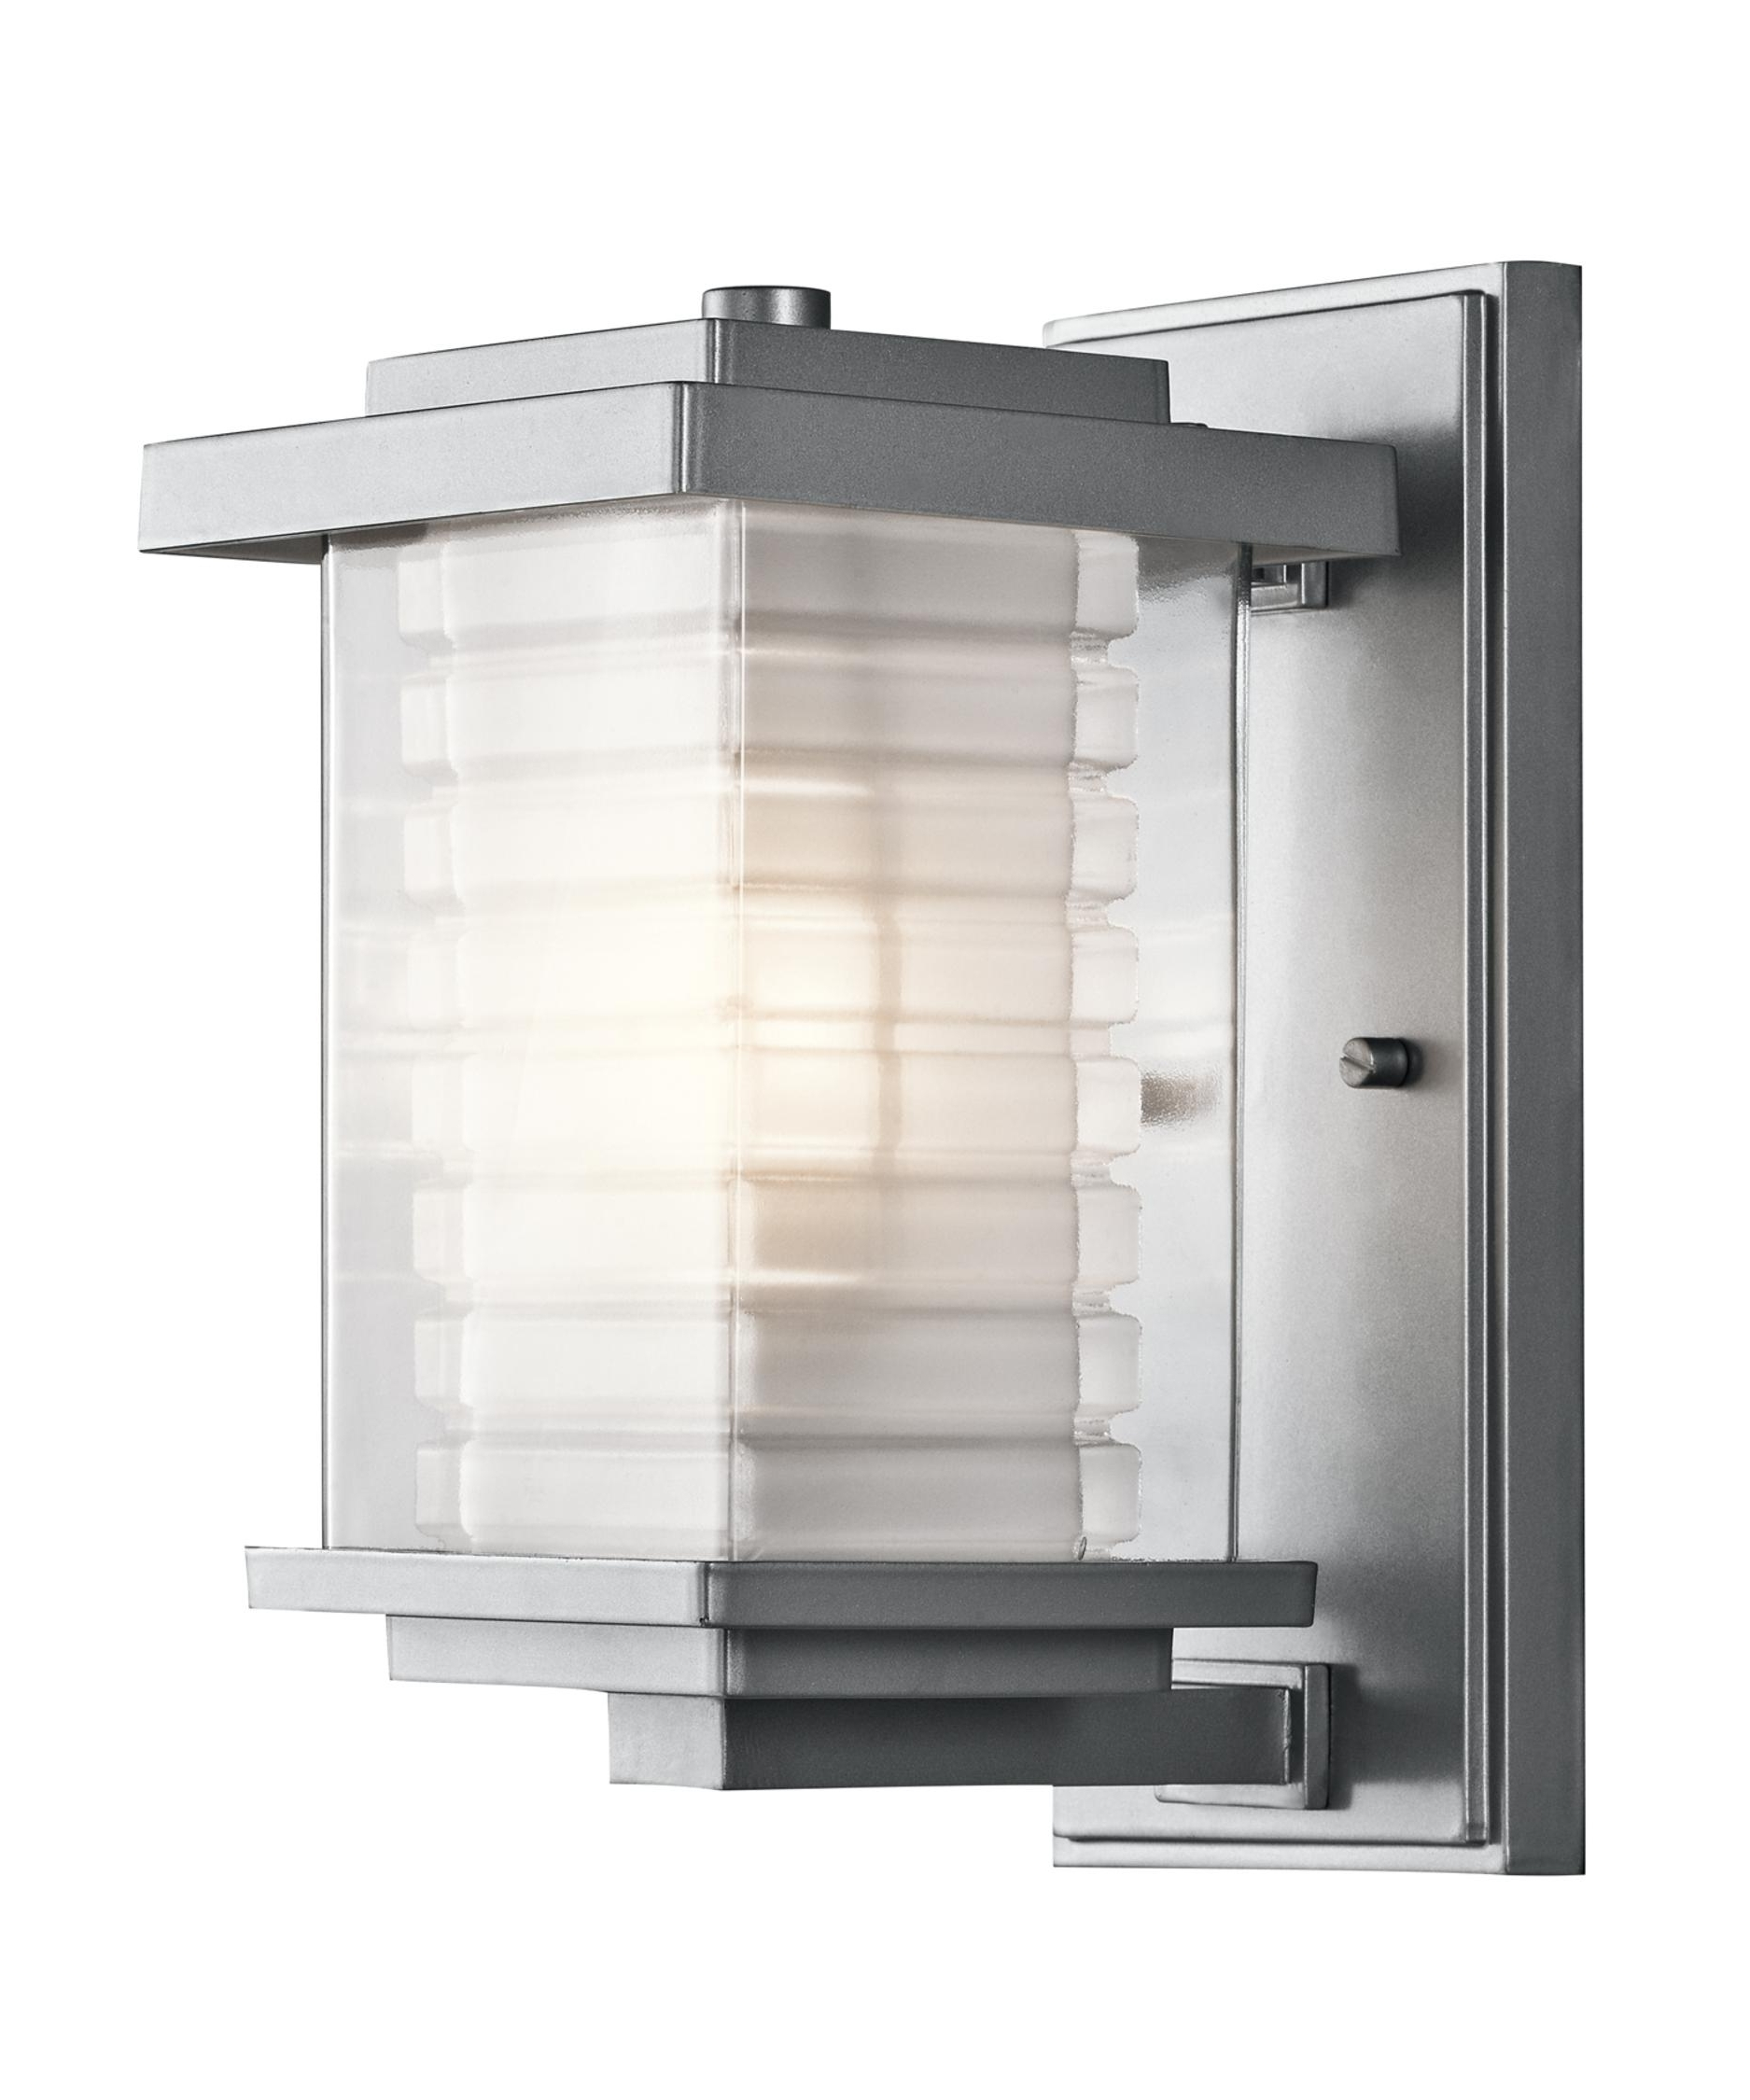 Kichler 49364 Ascari 6 Inch Wide 1 Light Outdoor Wall Light With Newest Kichler Lighting Outdoor Wall Lanterns (View 15 of 20)